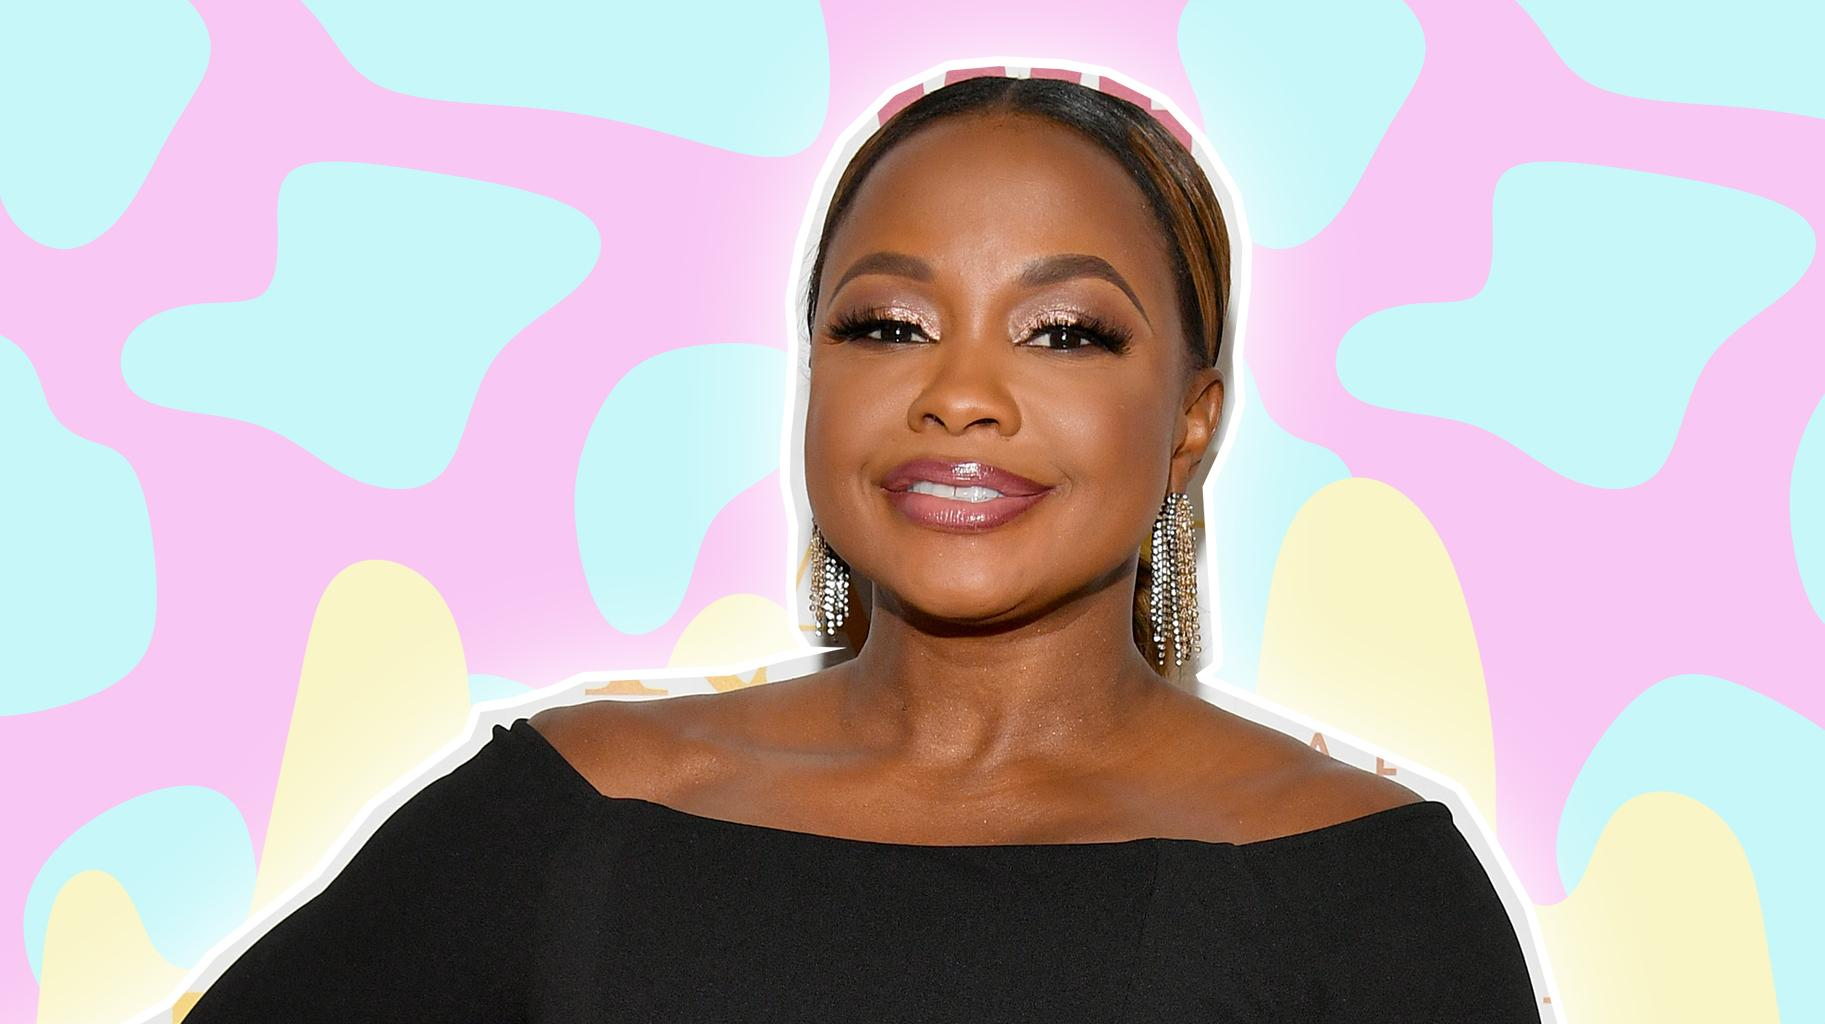 Phaedra Parks Shows Fans Where She Had A Blast Recently - Check Out Her Post